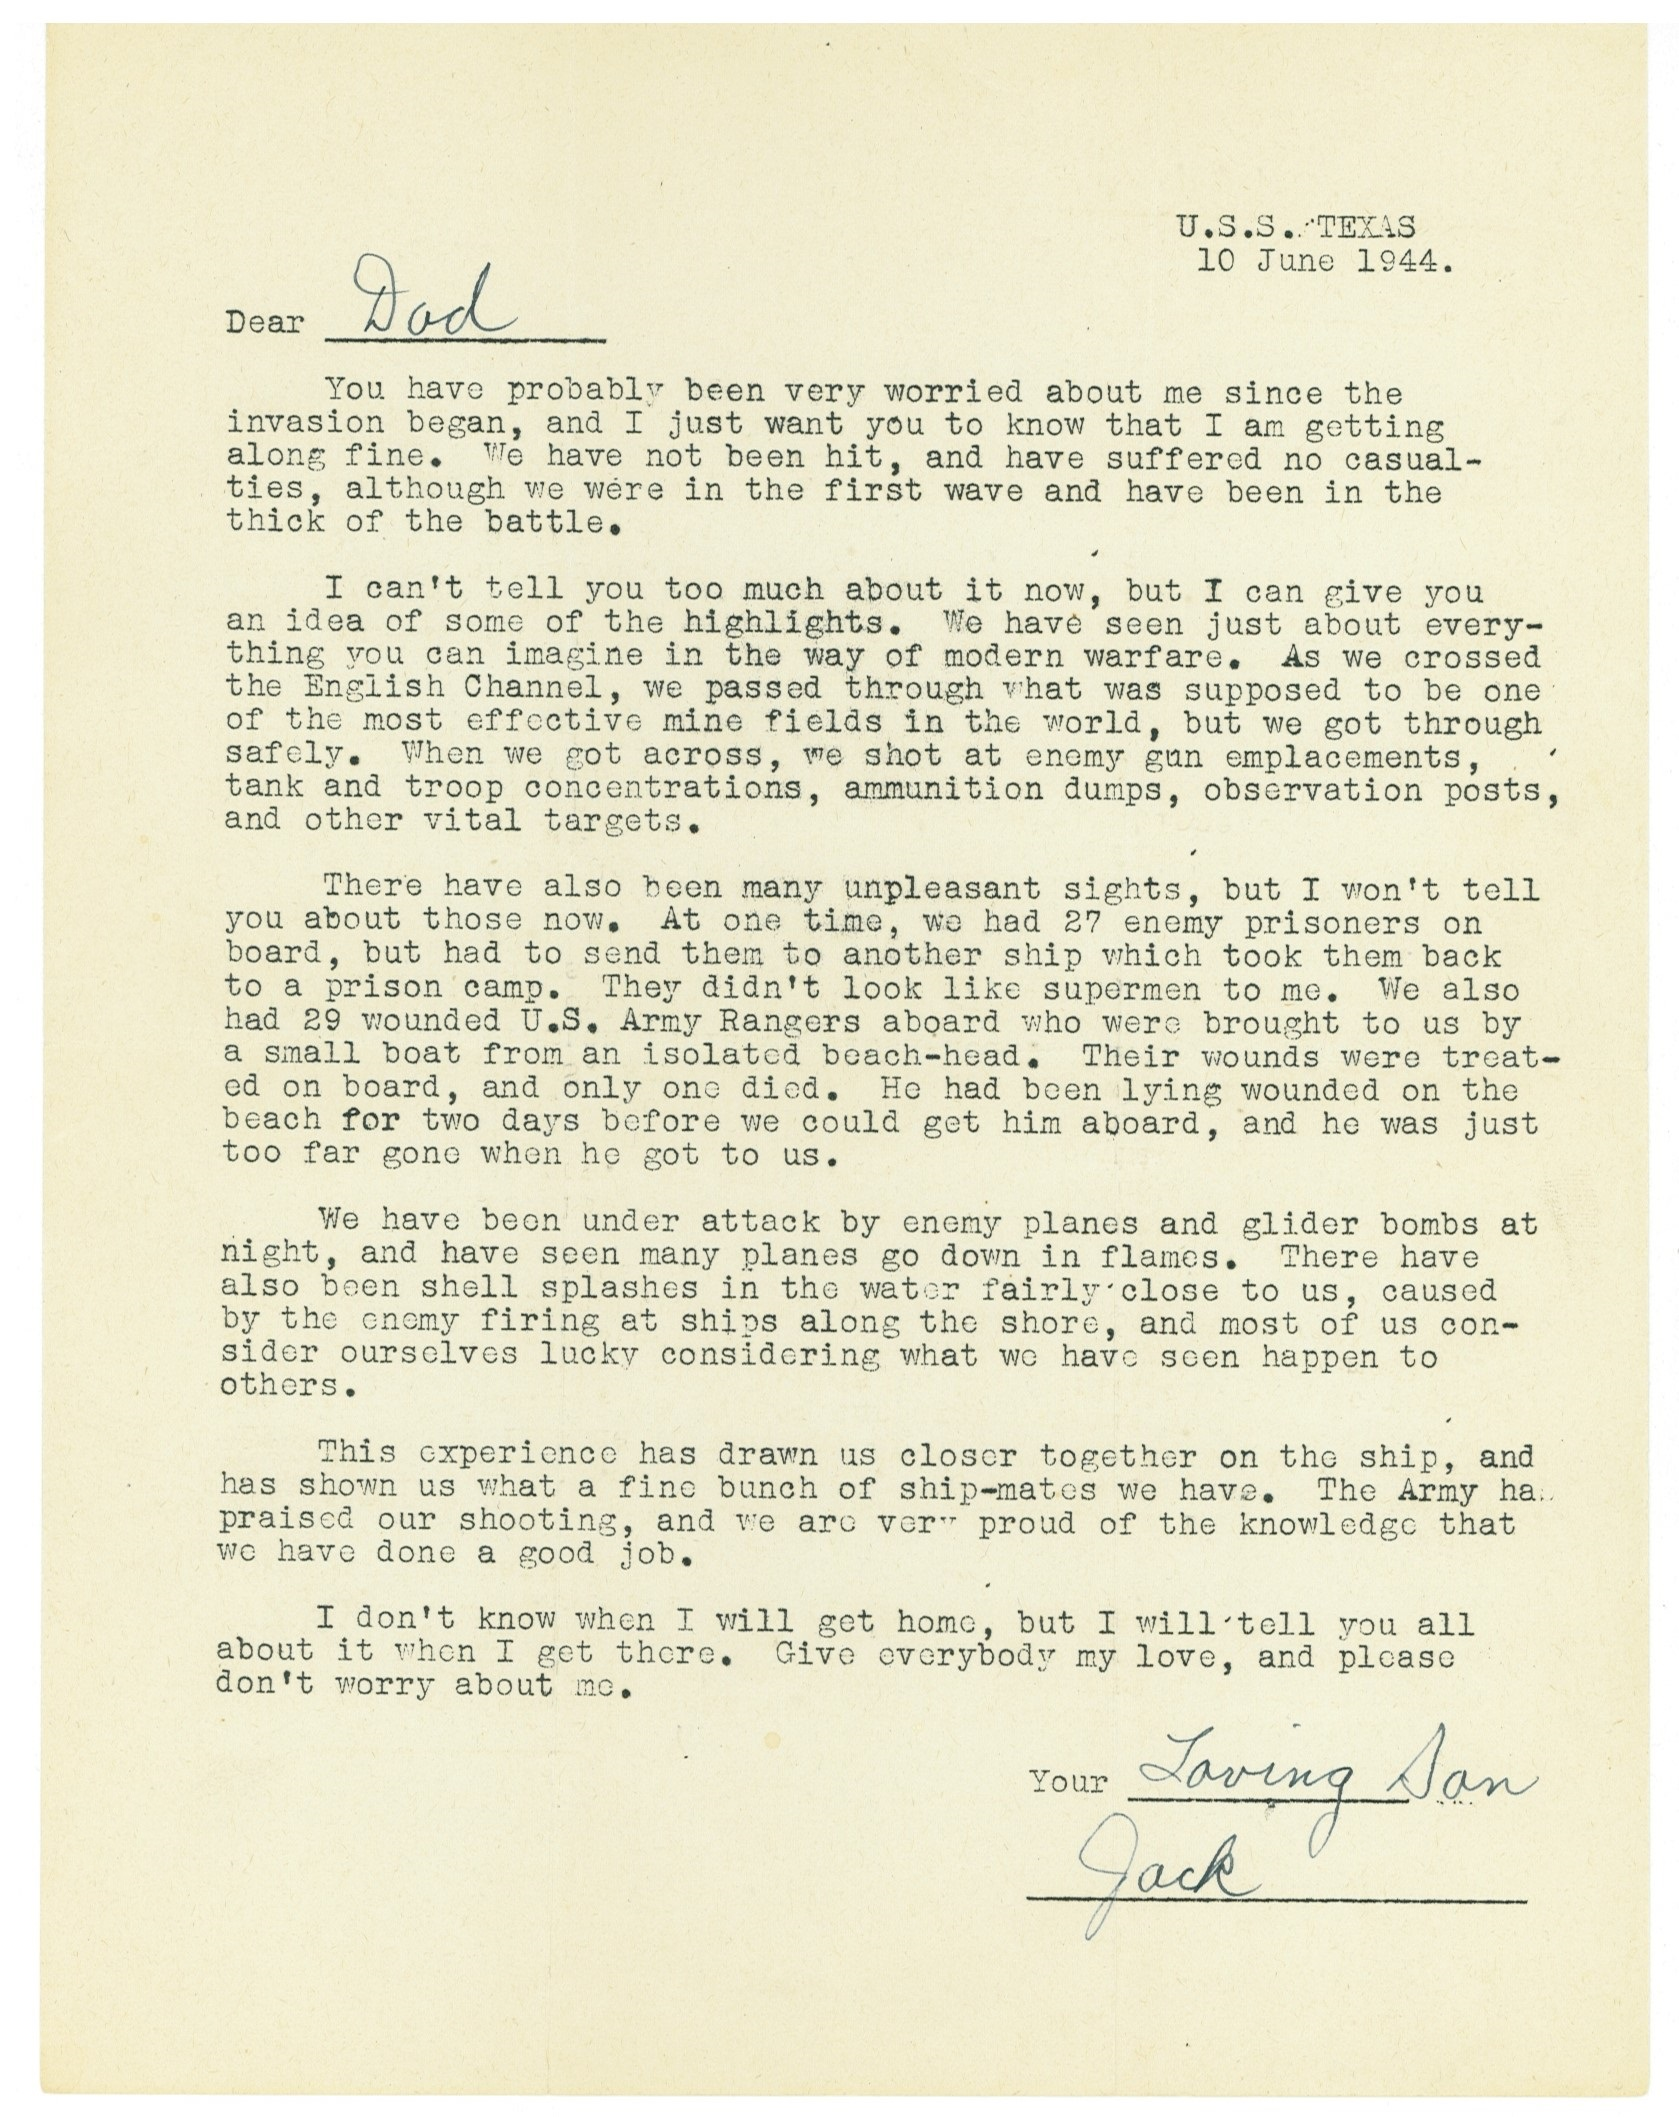 The form letter from Jack to his father, June 10, 1944.